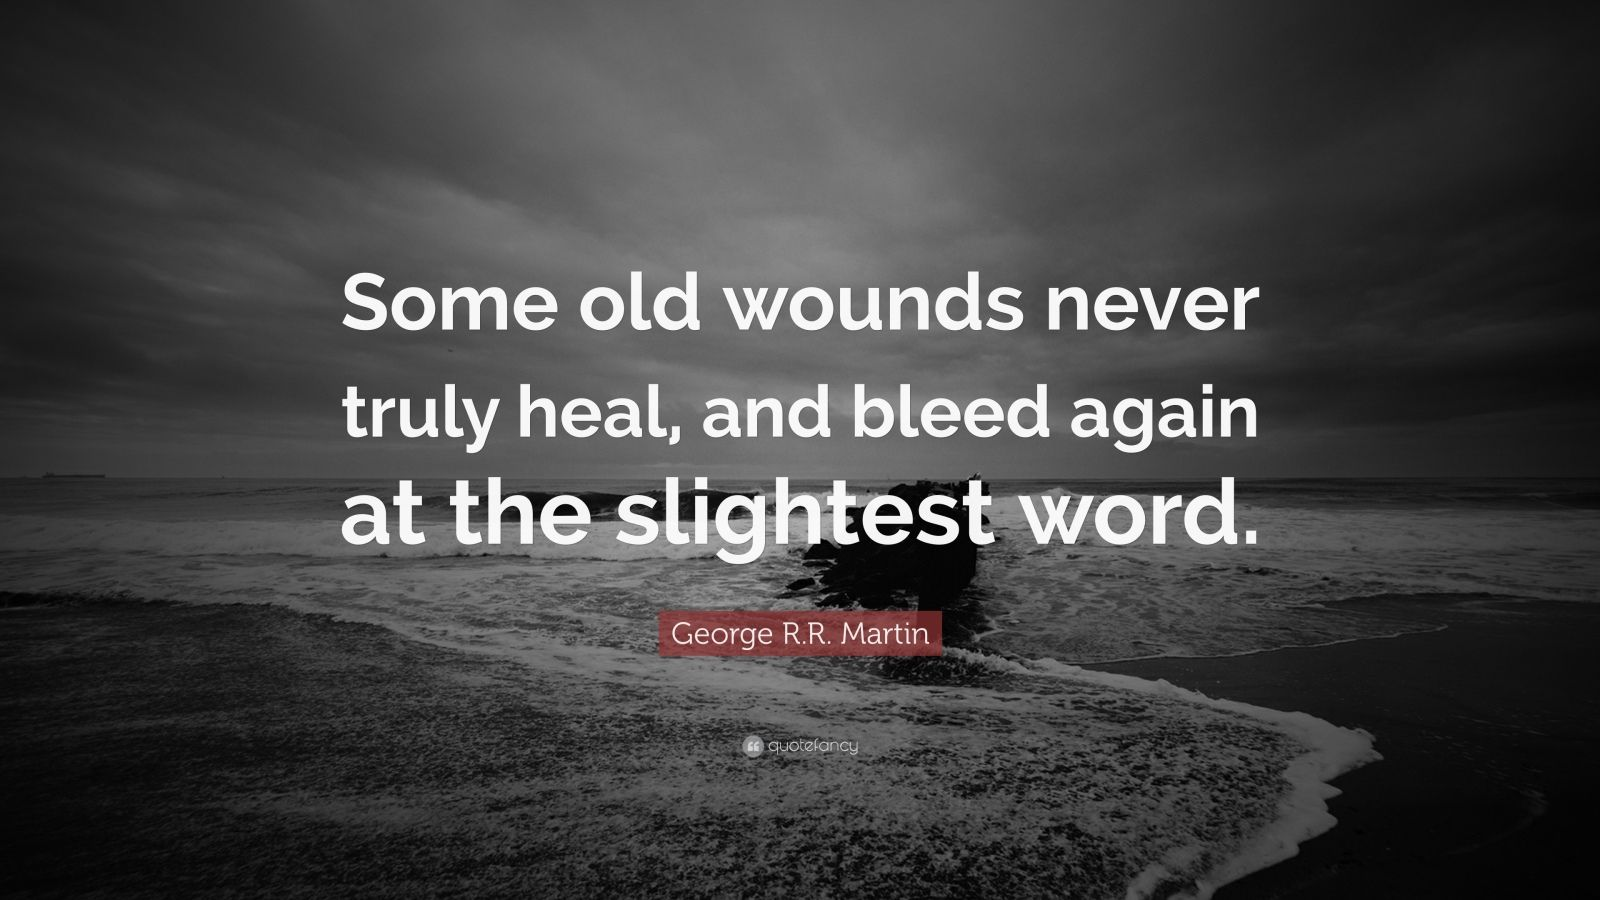 george r r  martin quote   u201csome old wounds never truly